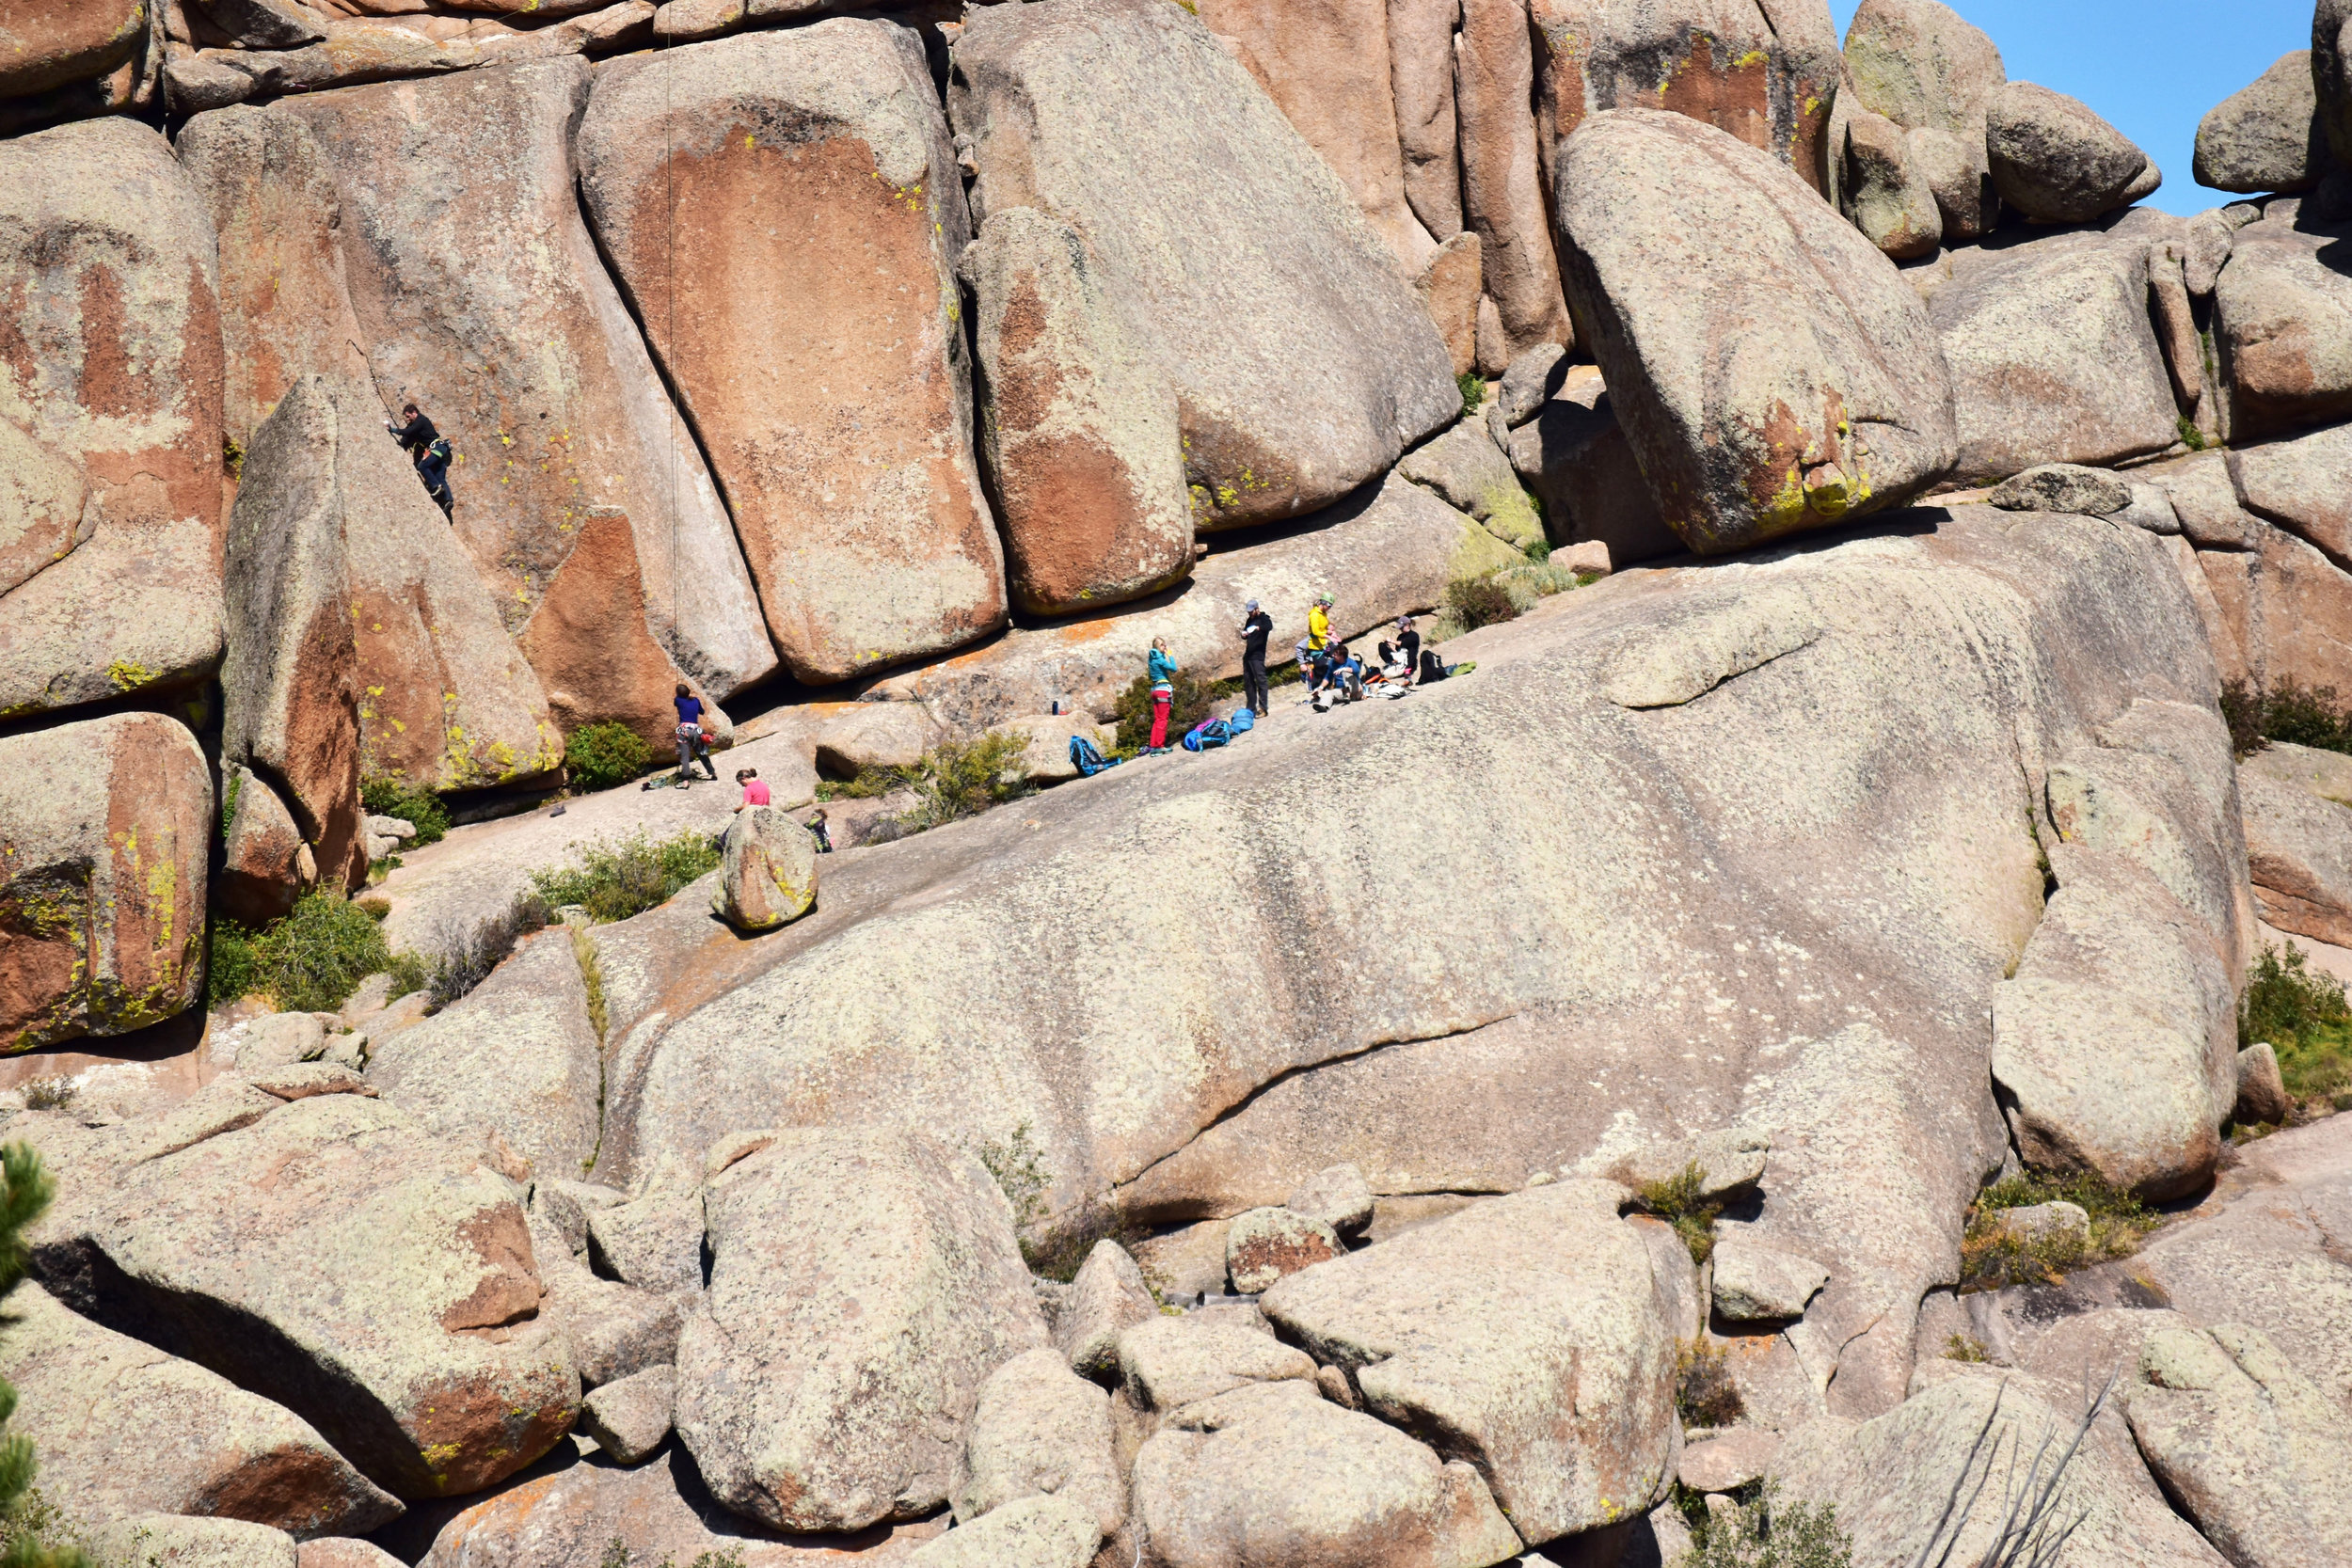 Vedauwoo is known for the challenging rocks - a climbers dream!